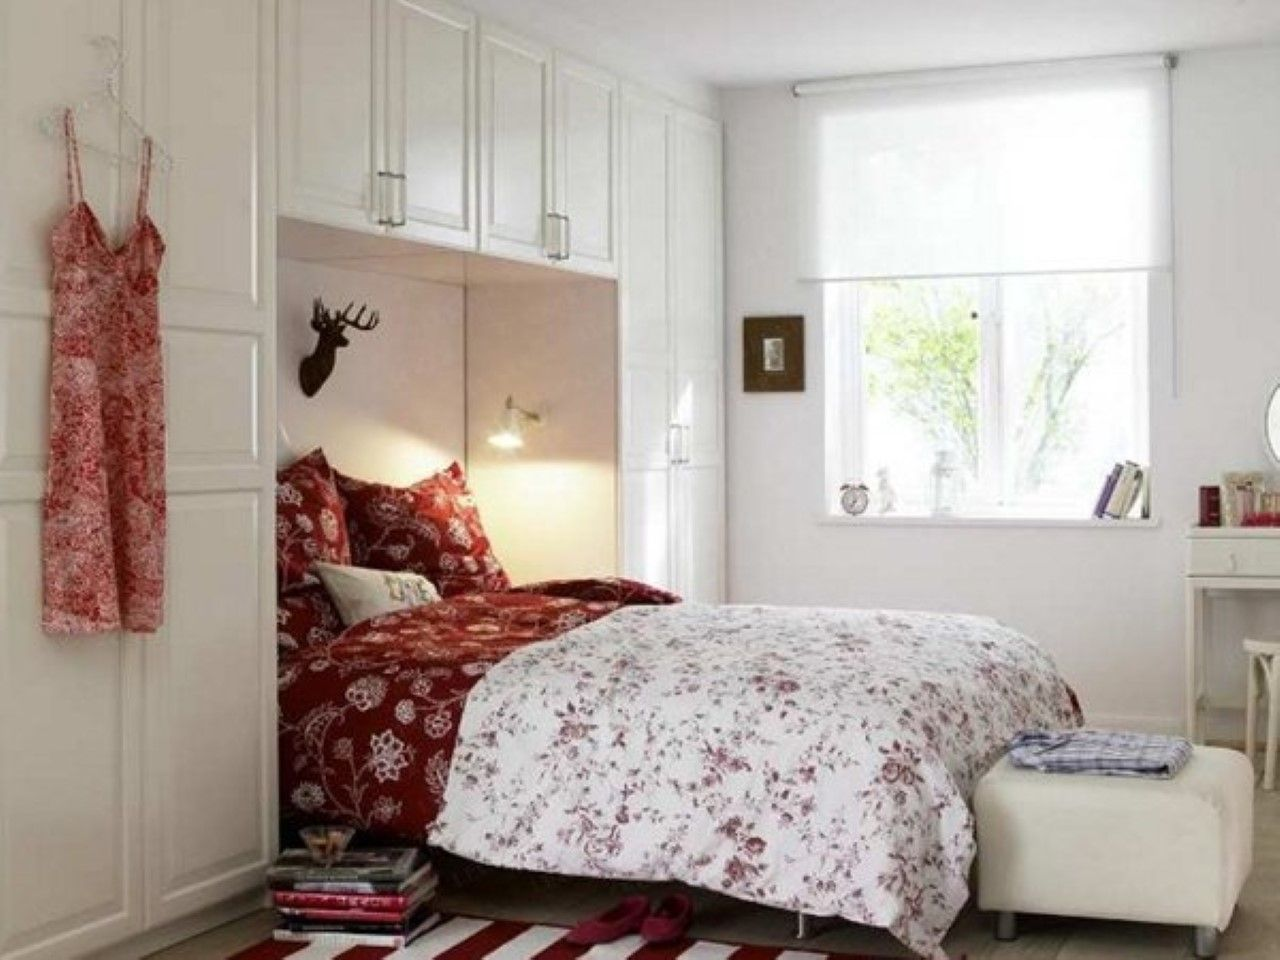 Bed head against window  cabinets over bed  my room  pinterest  pool houses bedding sets